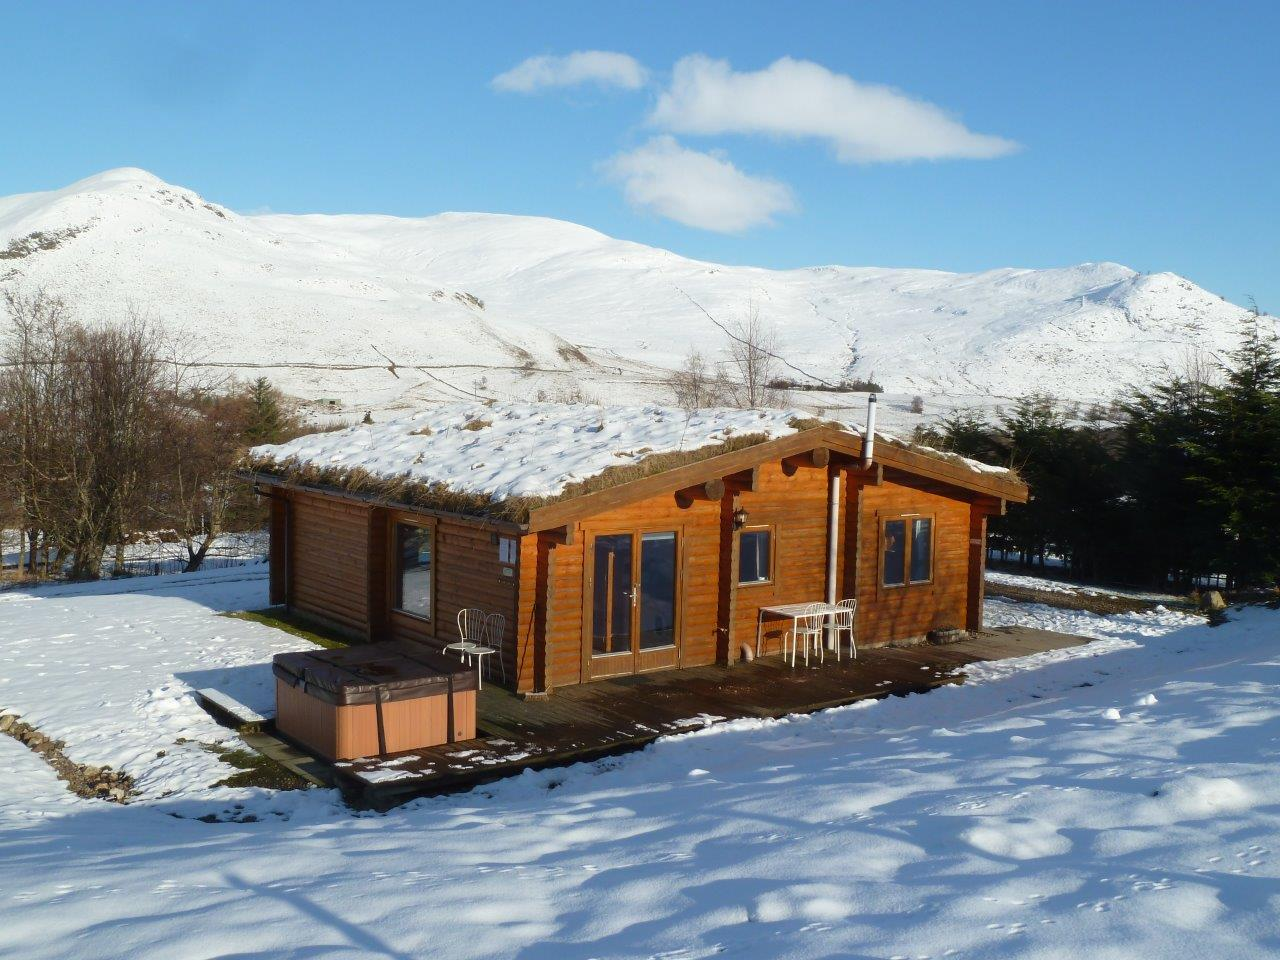 Cragdhu Log Cabin Winter